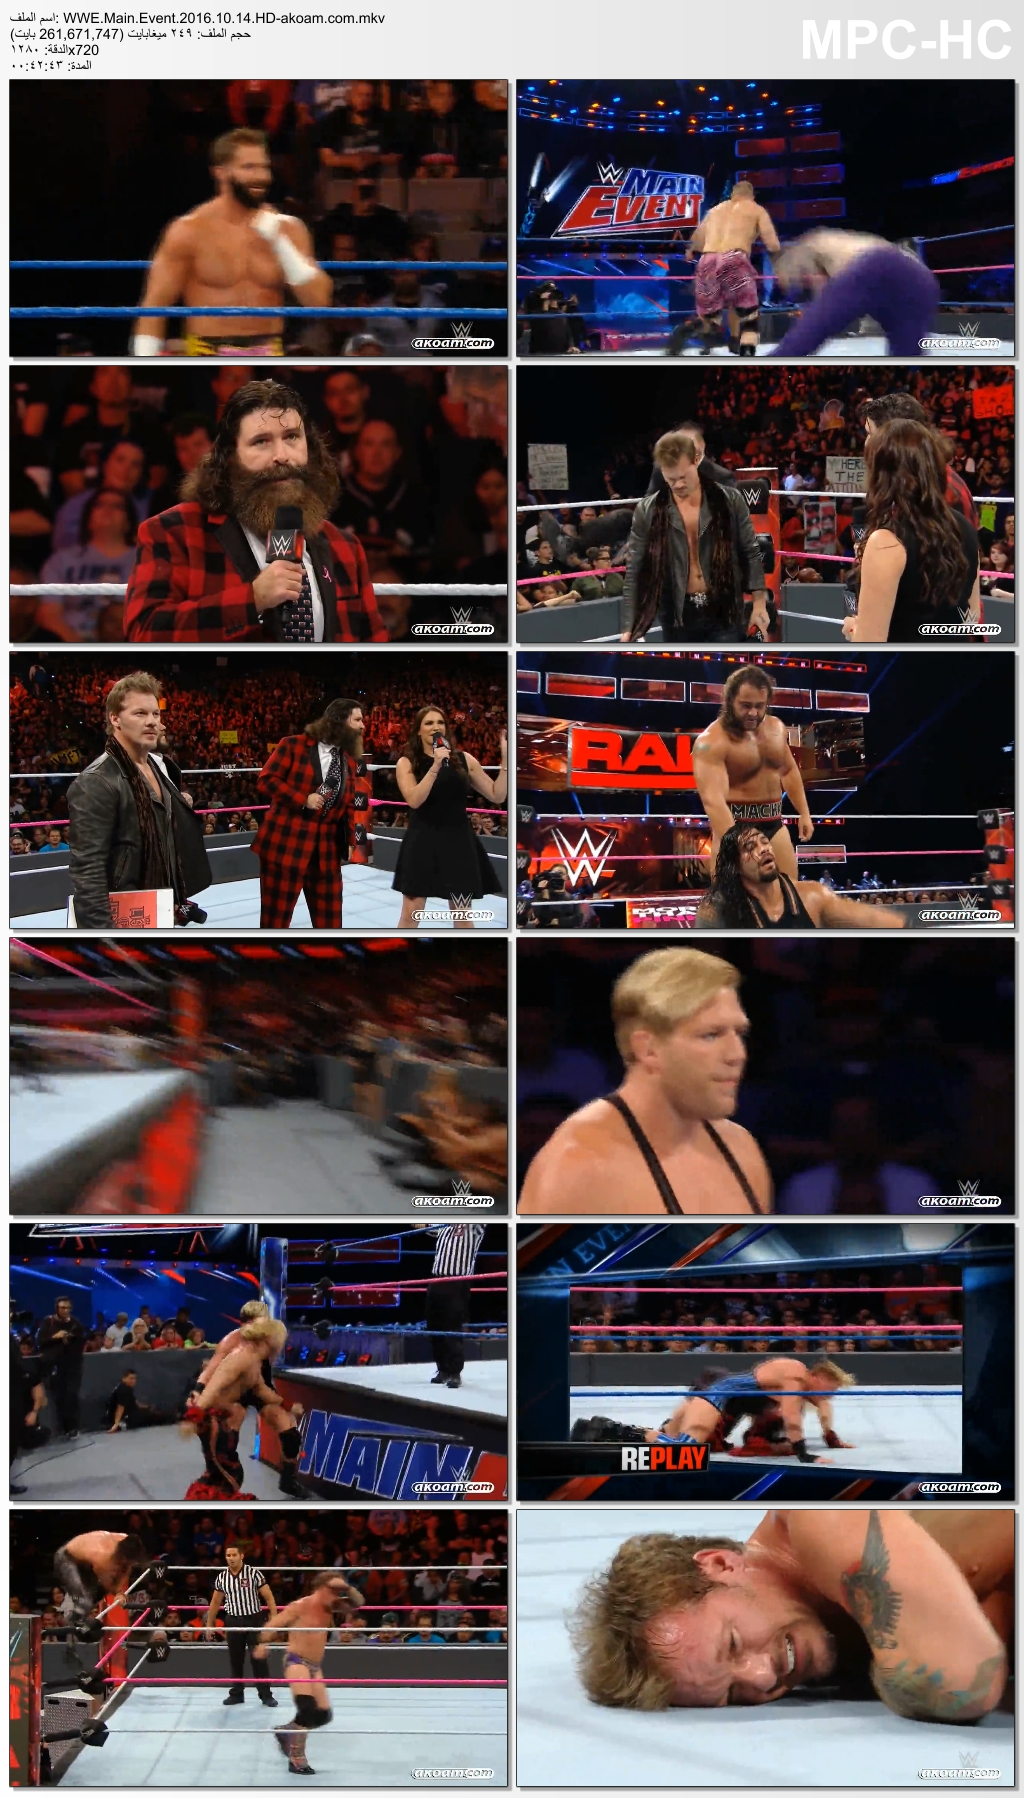 WWE Main Event 2016,WWE,Main Event